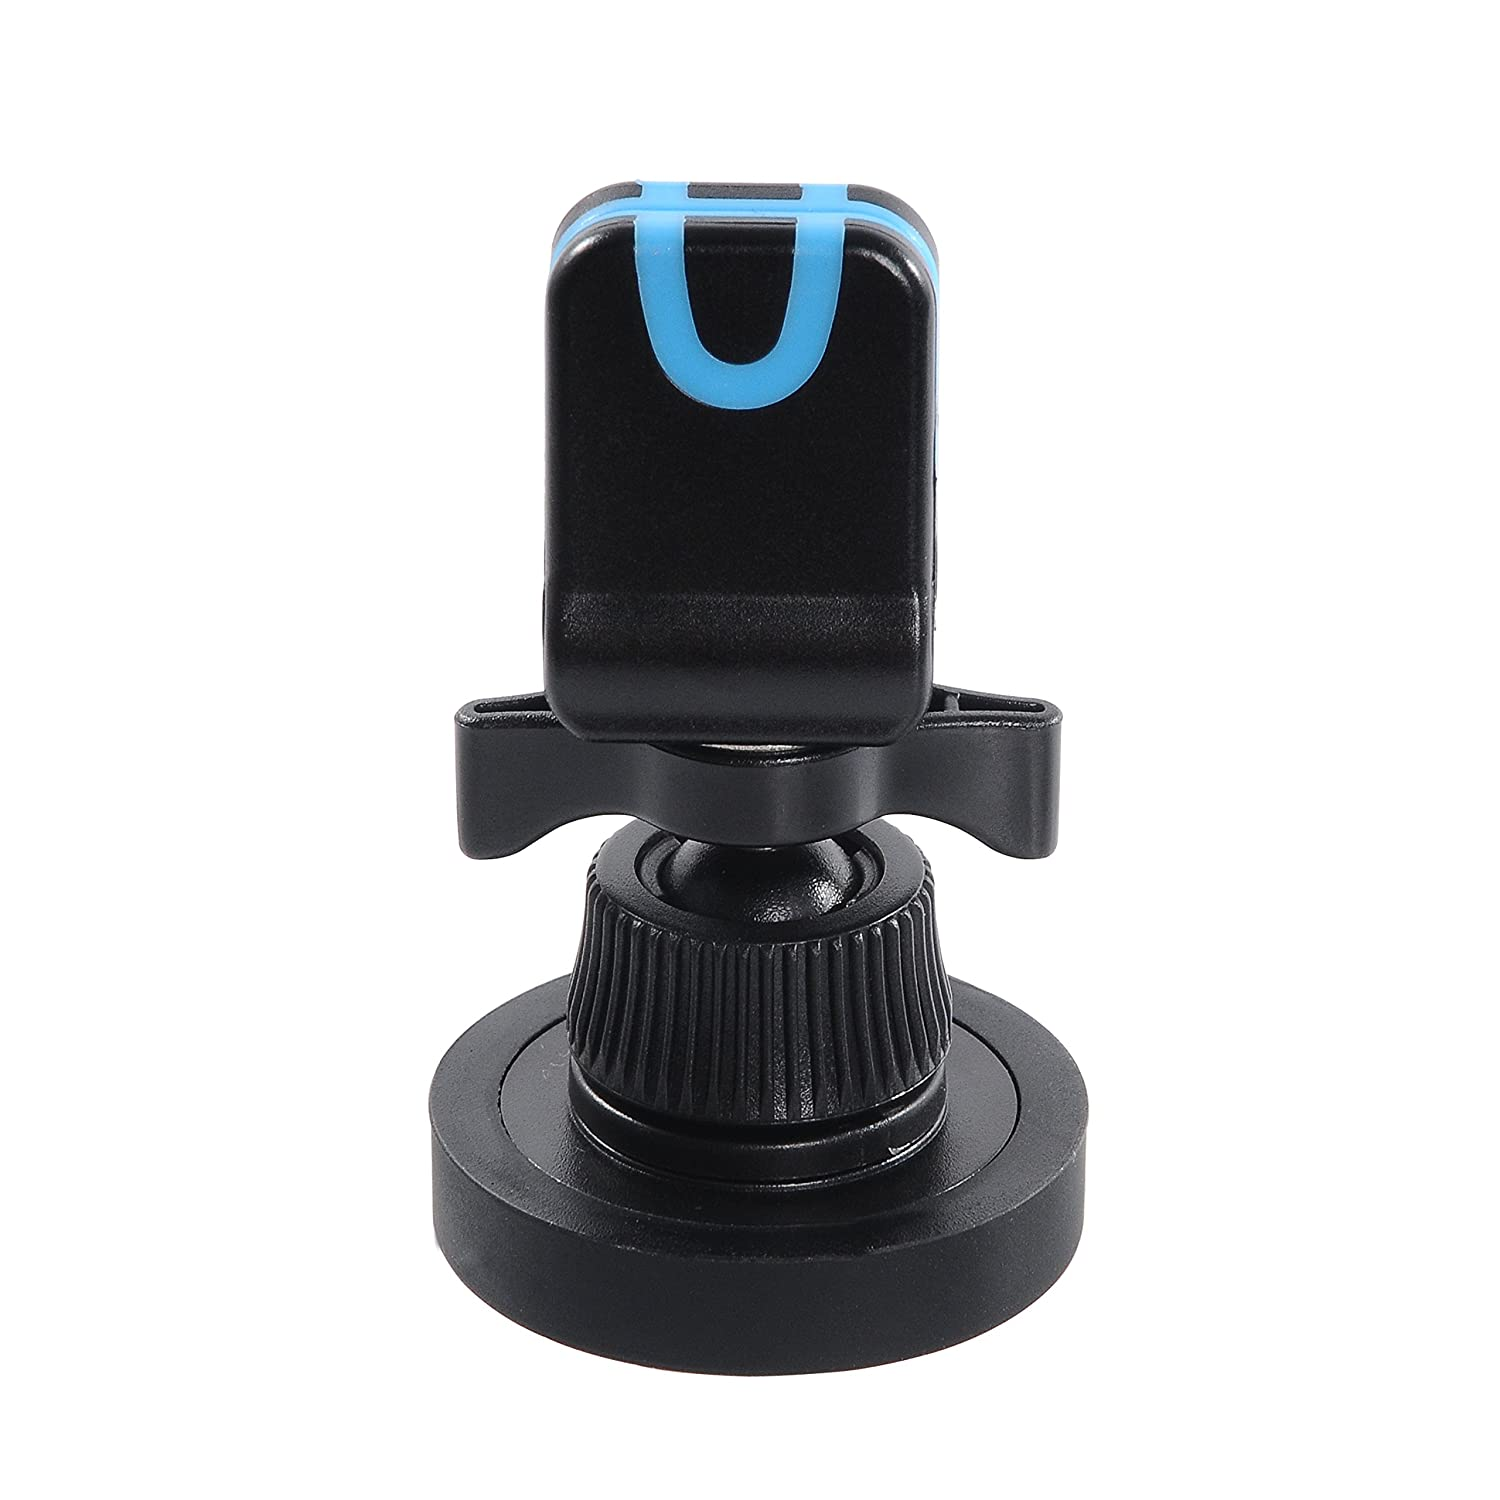 Samsung Galaxy S8 S7 S6 S5 XR Rotating Magnetic Universal Air Vent Cell Phone Mount Holder for iPhone 11 Pro Note 5 4 3 6s Edge Plus 5s SE GPS -Blue iPhone Xs Max Wisdompro Car Mount 7 6